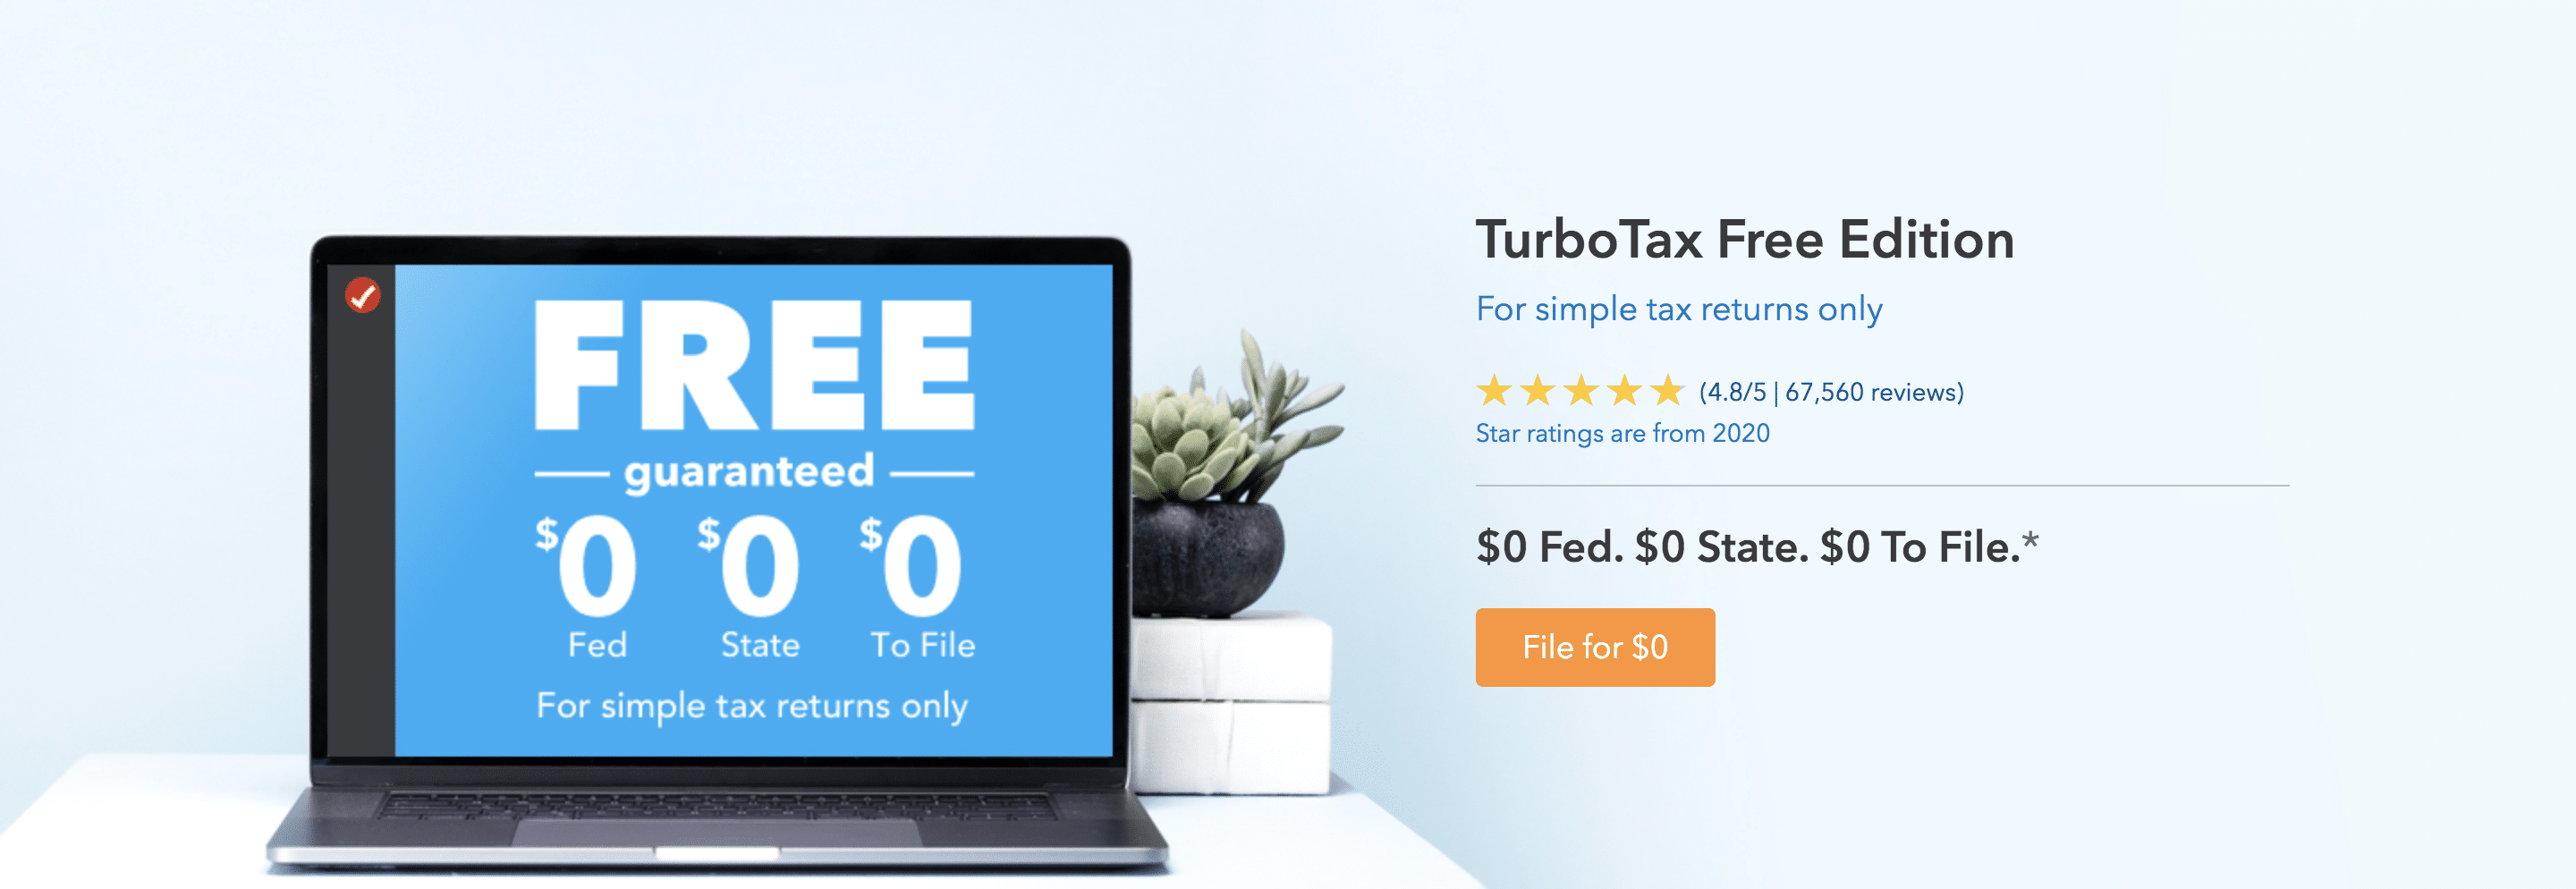 turbo tax free edition